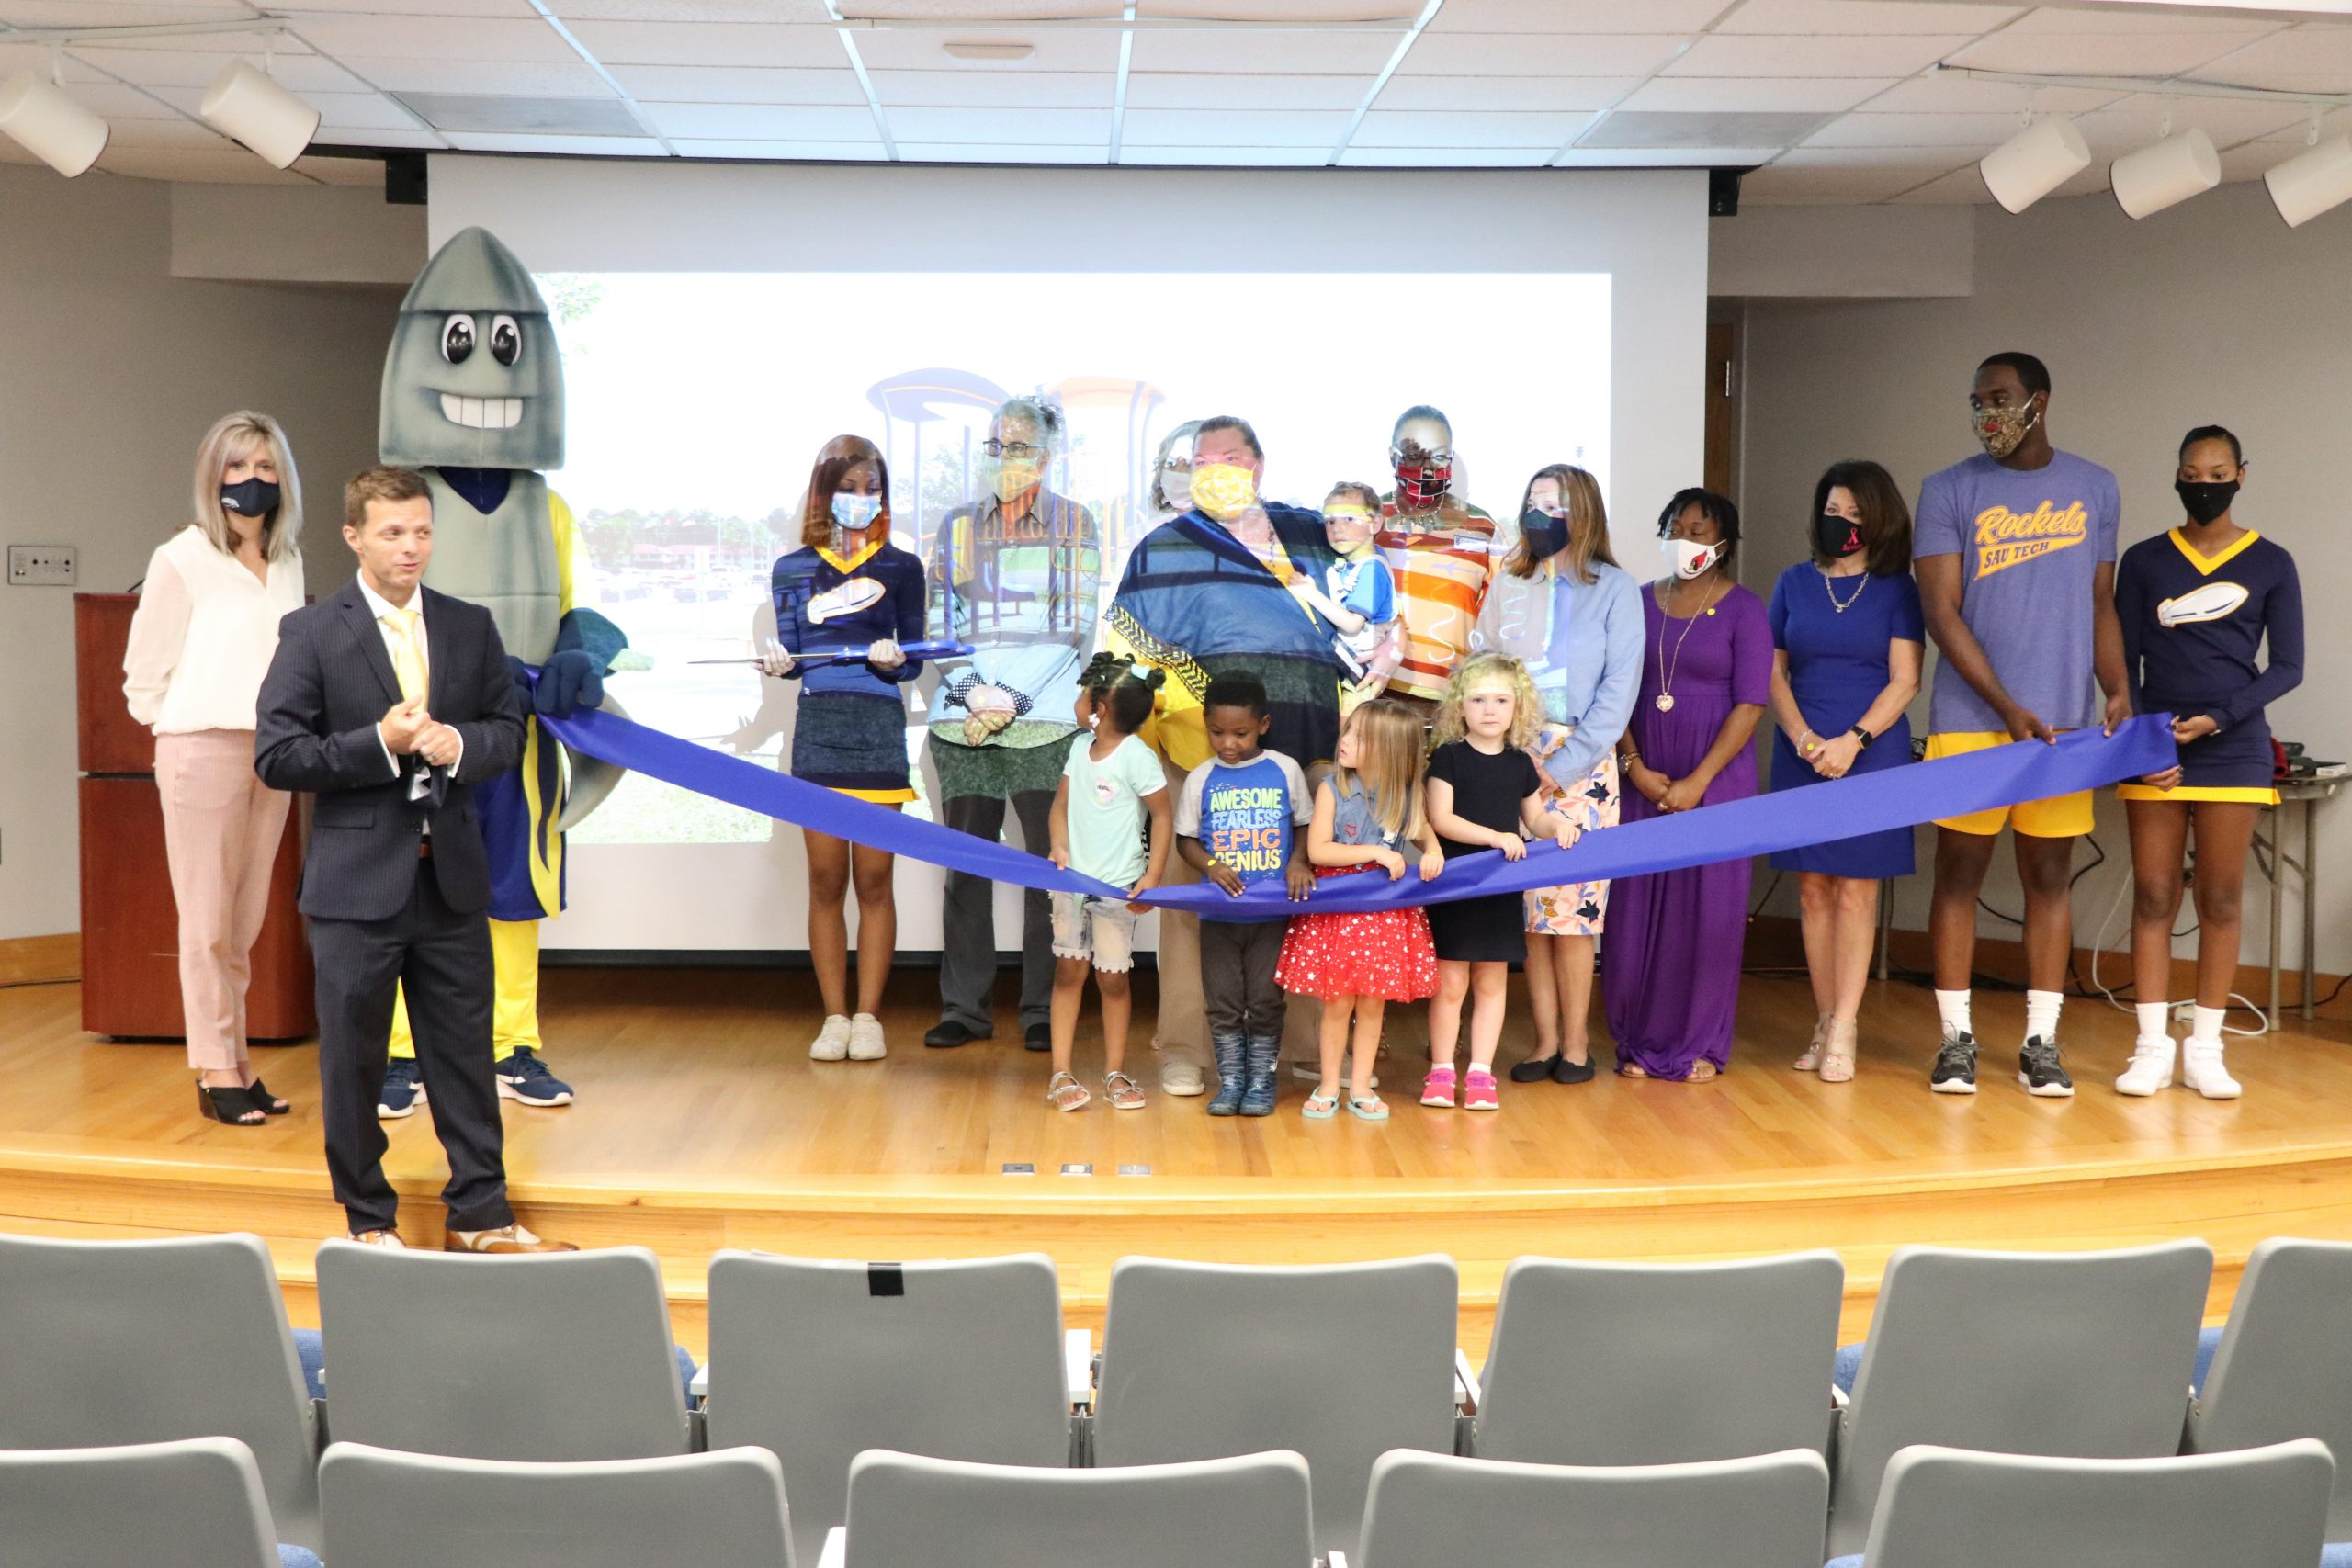 group of people and children doing a ribbon cutting